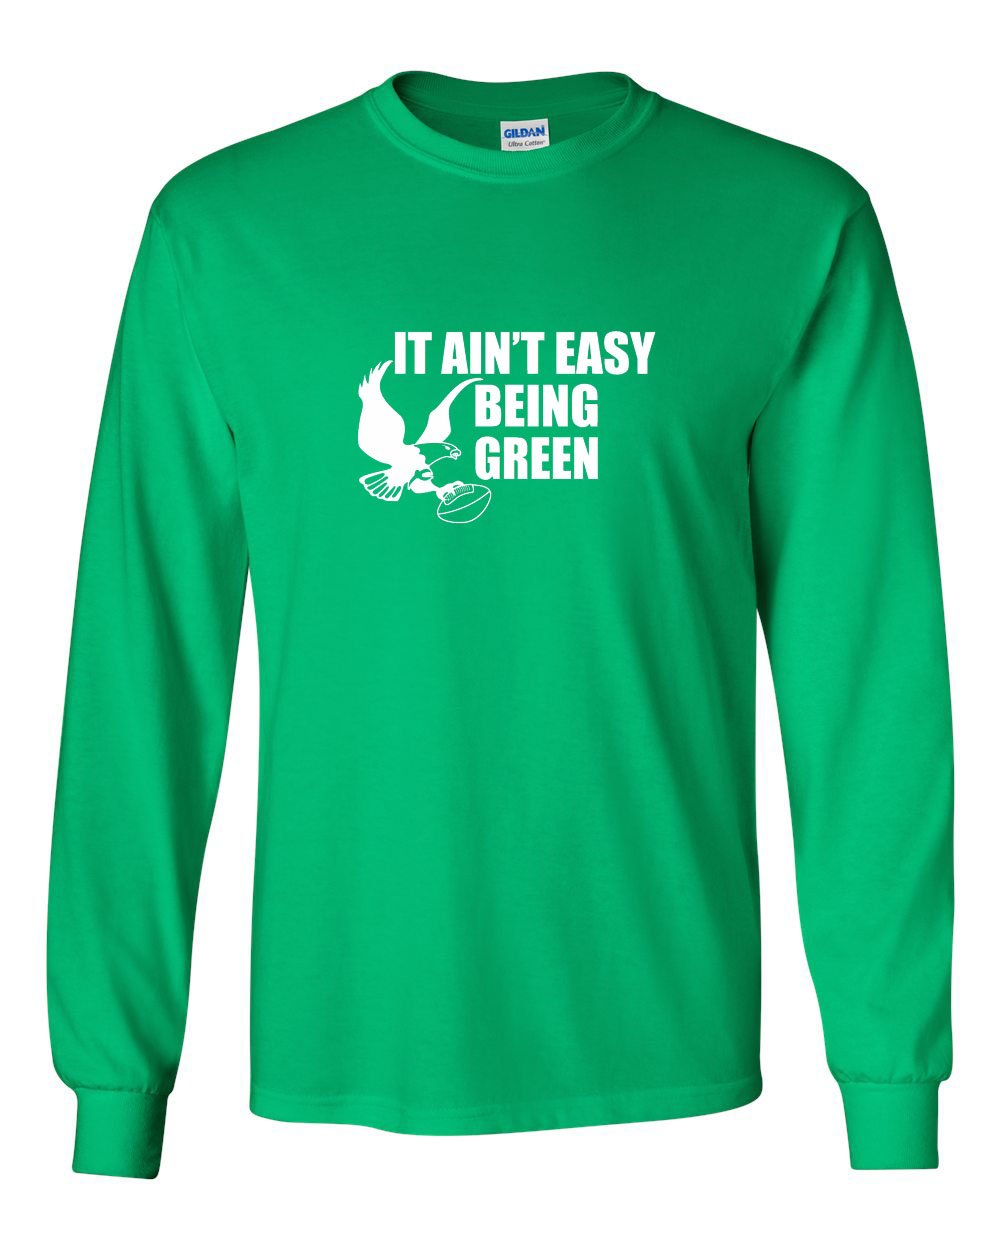 It Ain't Easy Being Green MENS Long Sleeve Heavy Cotton T-Shirt